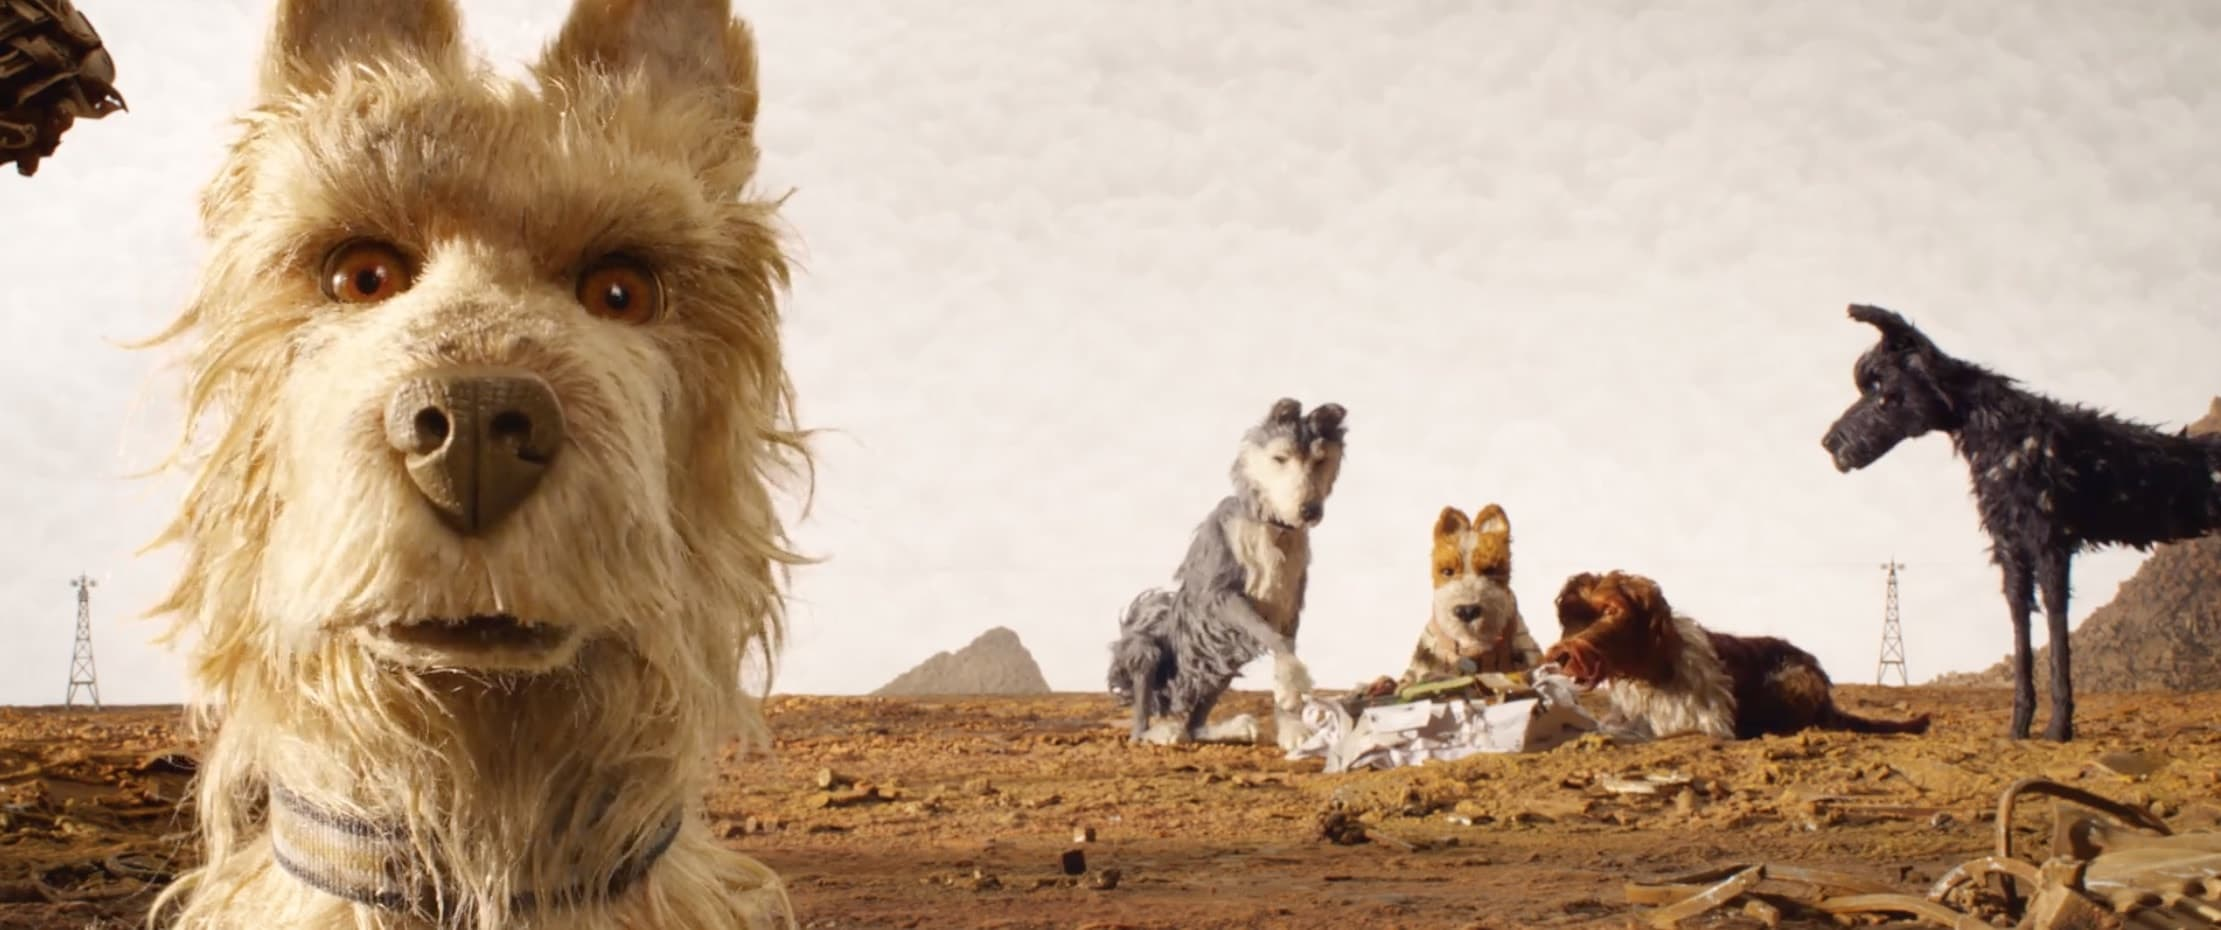 Isle of Dogs Kino Film Design